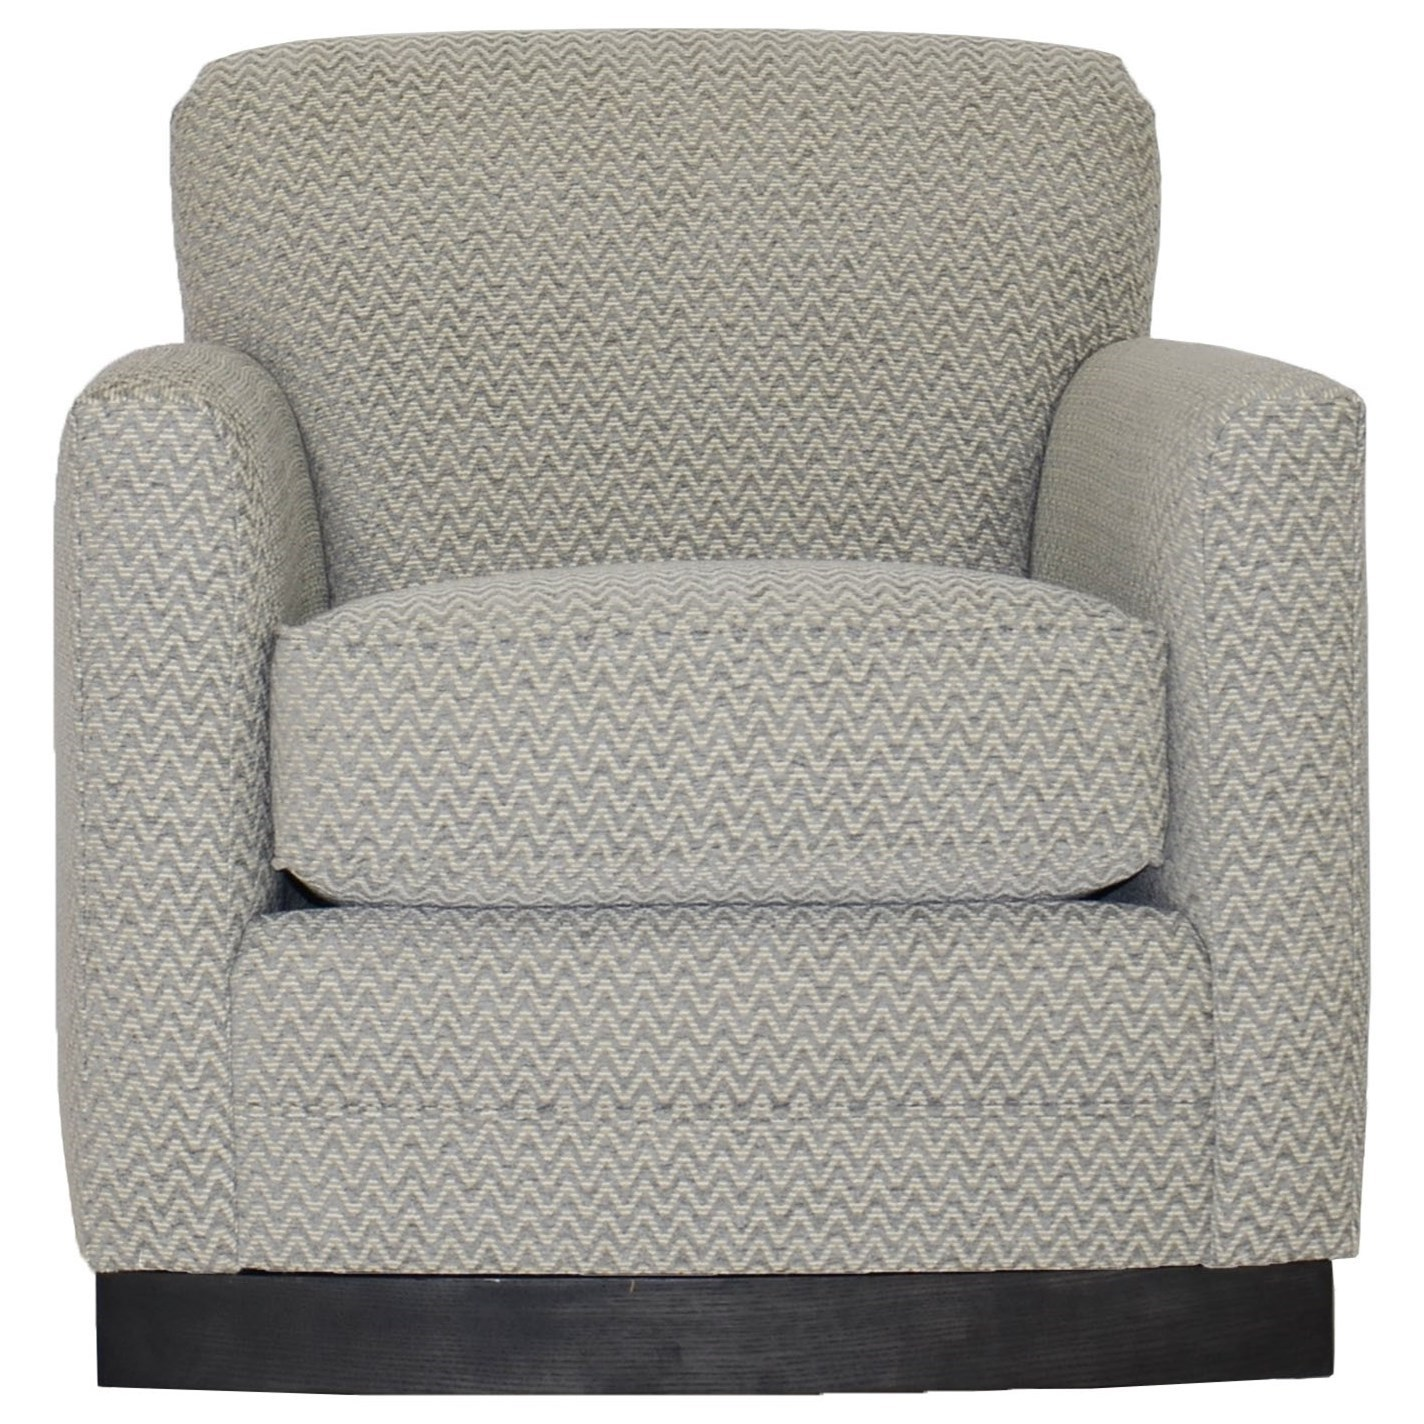 Vanguard Furniture Michael WeissParis Swivel Chair